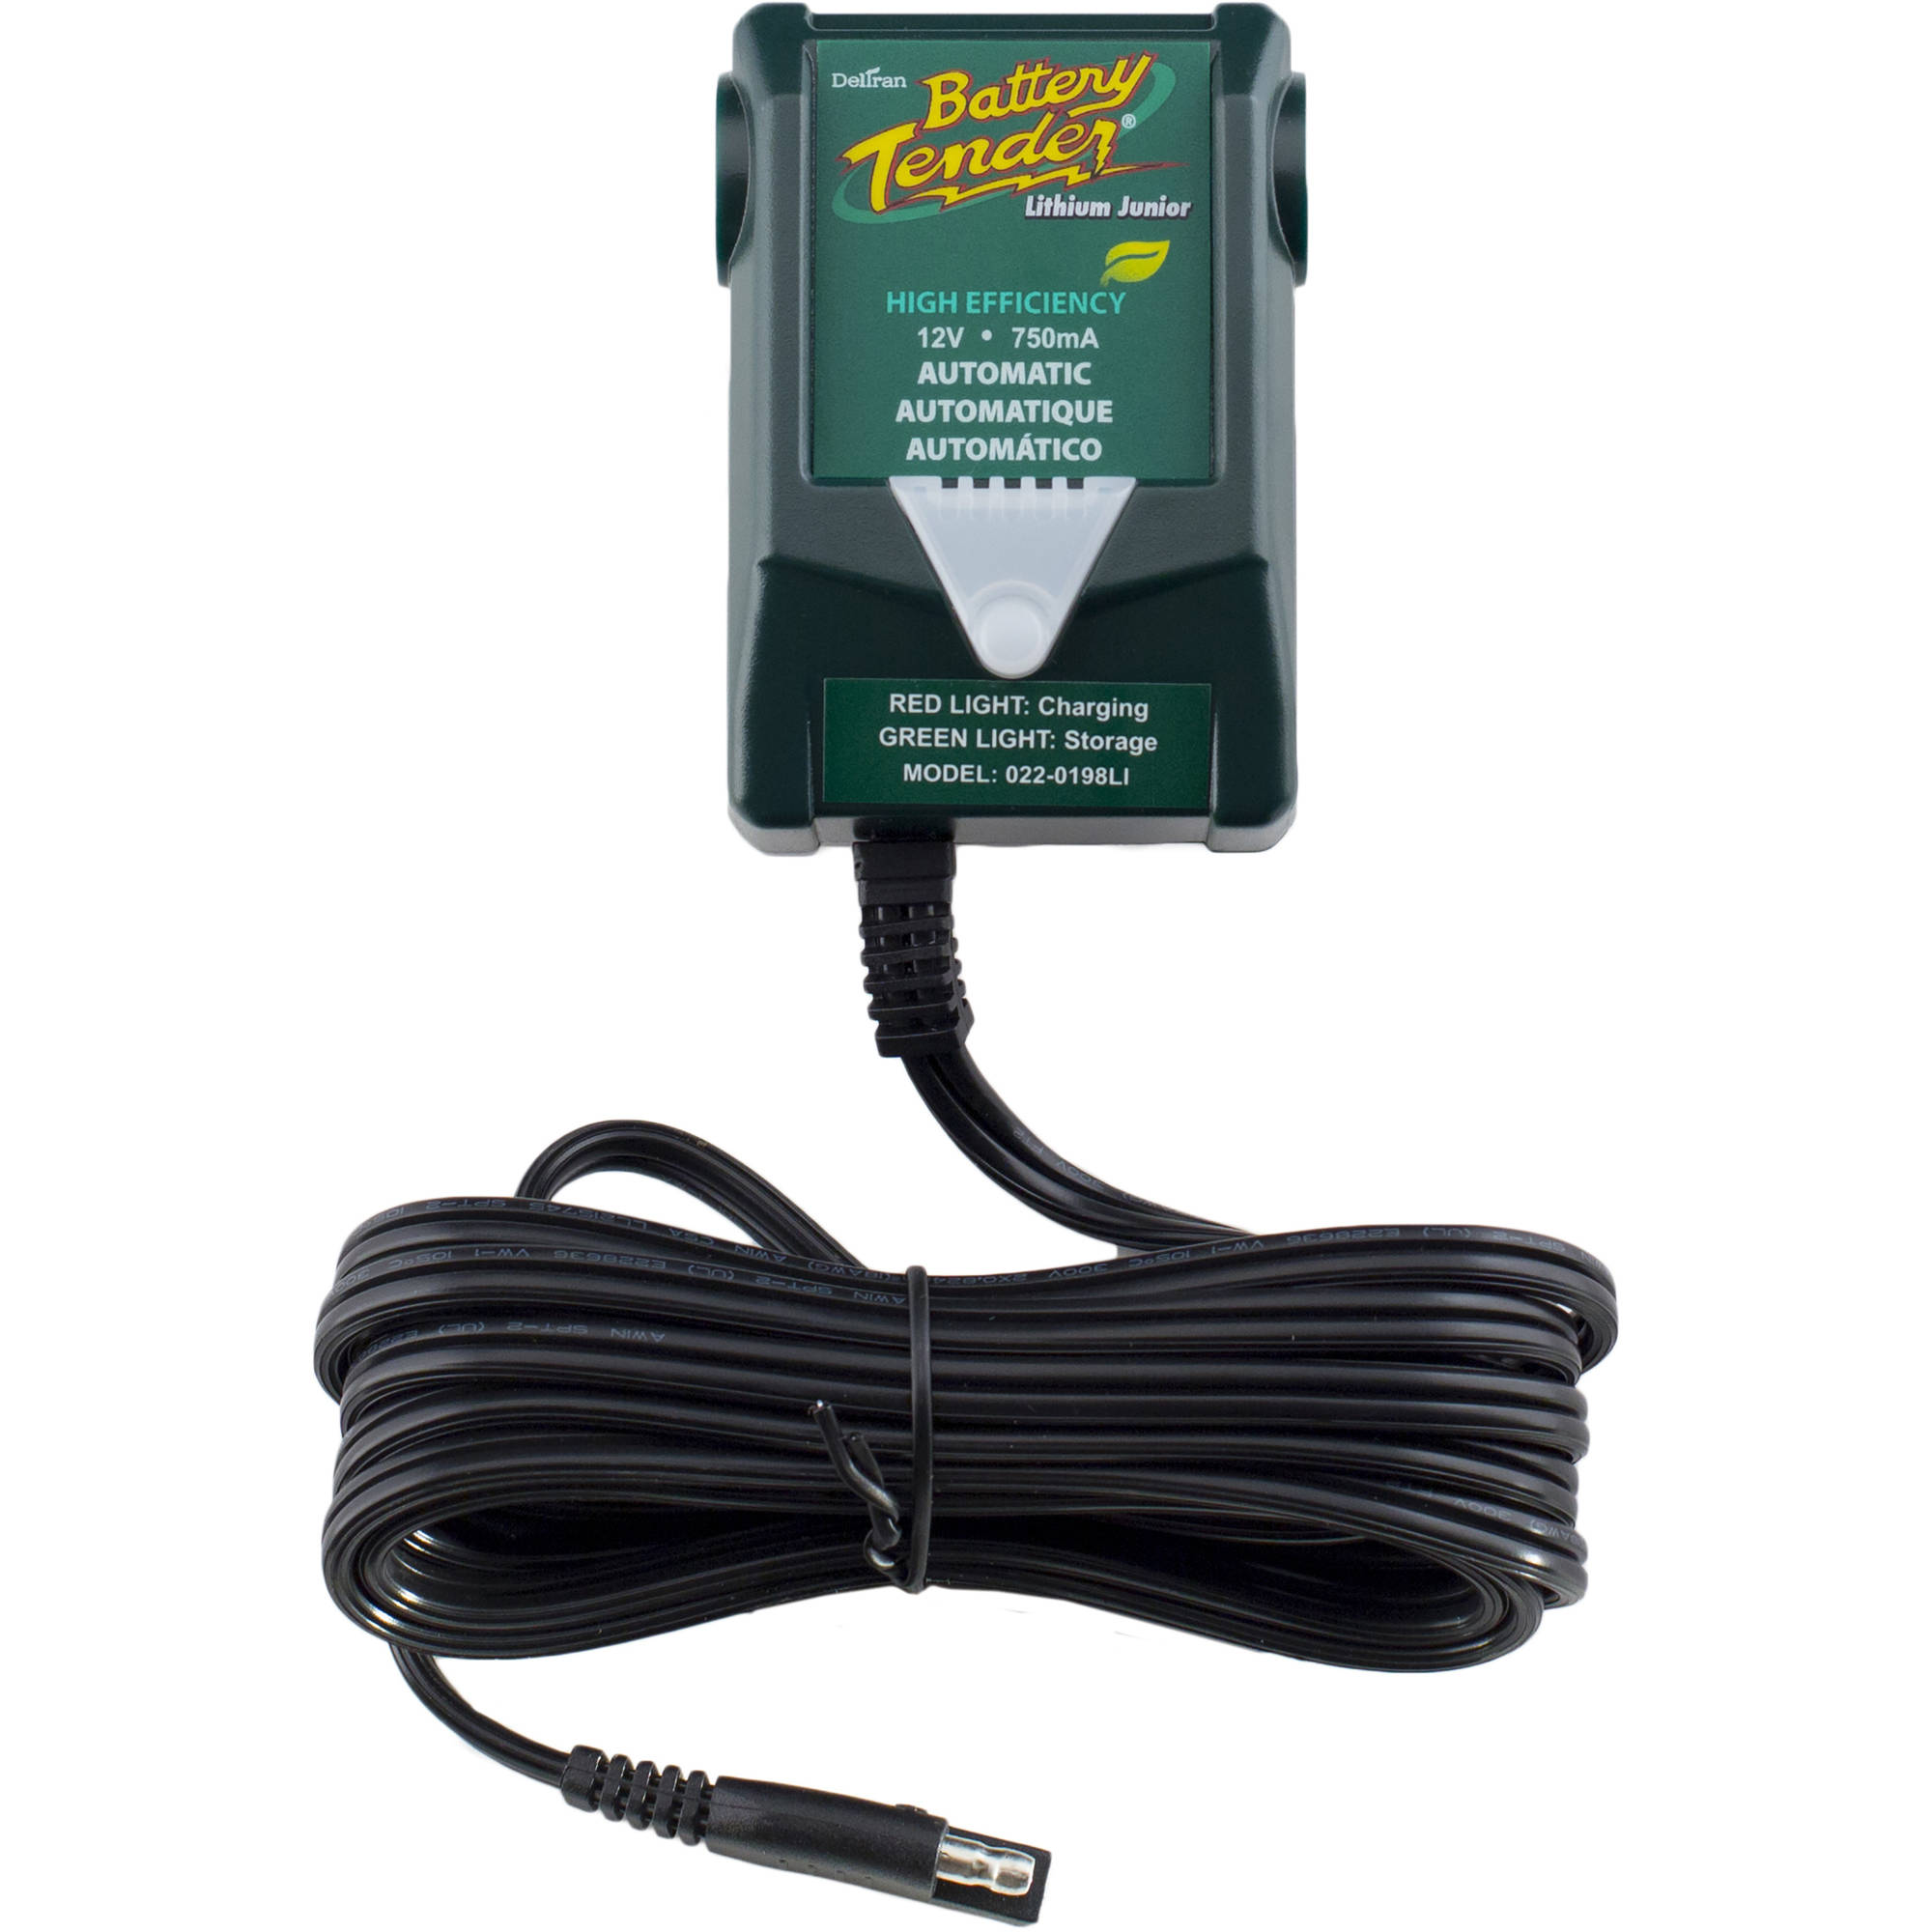 Battery Tender 12V 750Ma Junior High Efficiency Lithium Charger